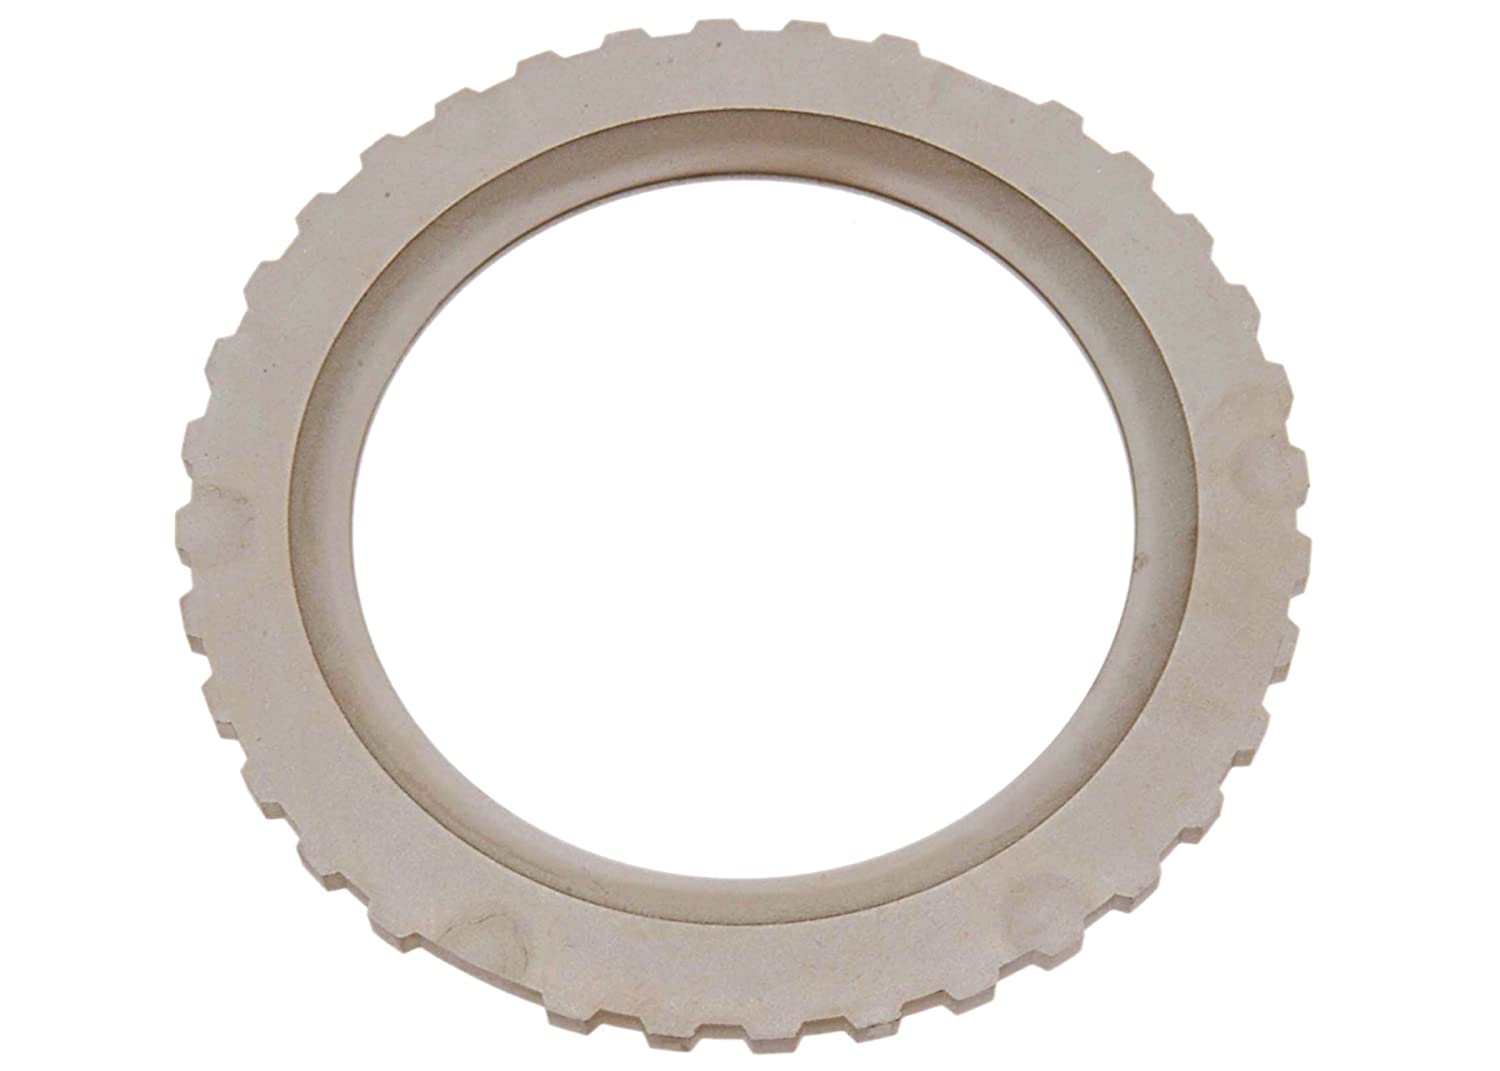 ACDelco 24253297 GM Original Equipment Automatic Transmission 3-5-Reverse Clutch Backing Plate